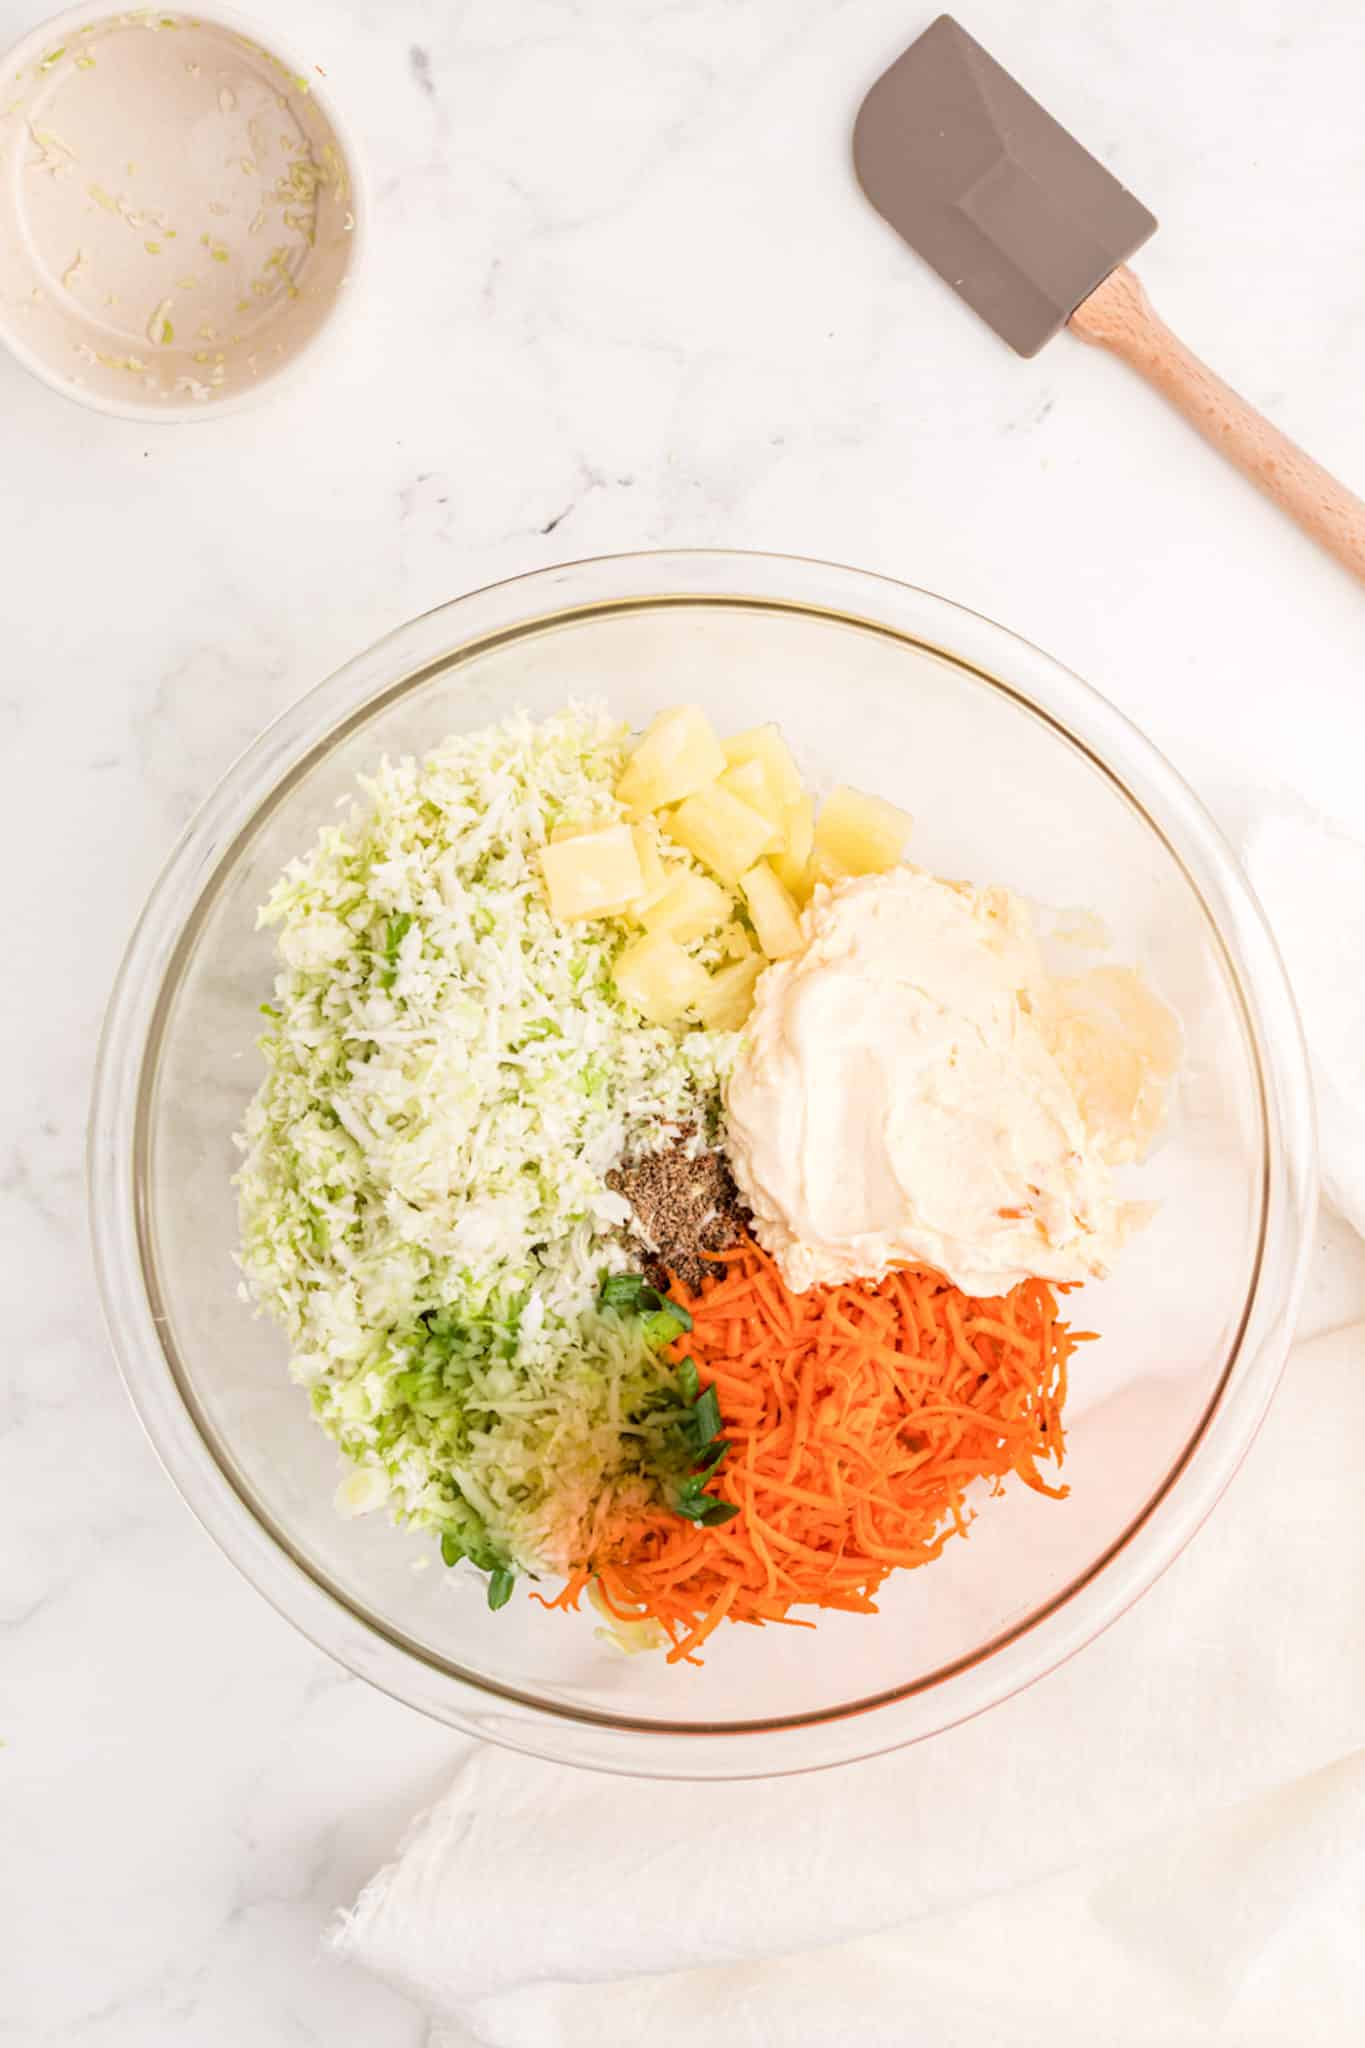 carrots, cabbage, pineapple, and mayonnaise in a bowl